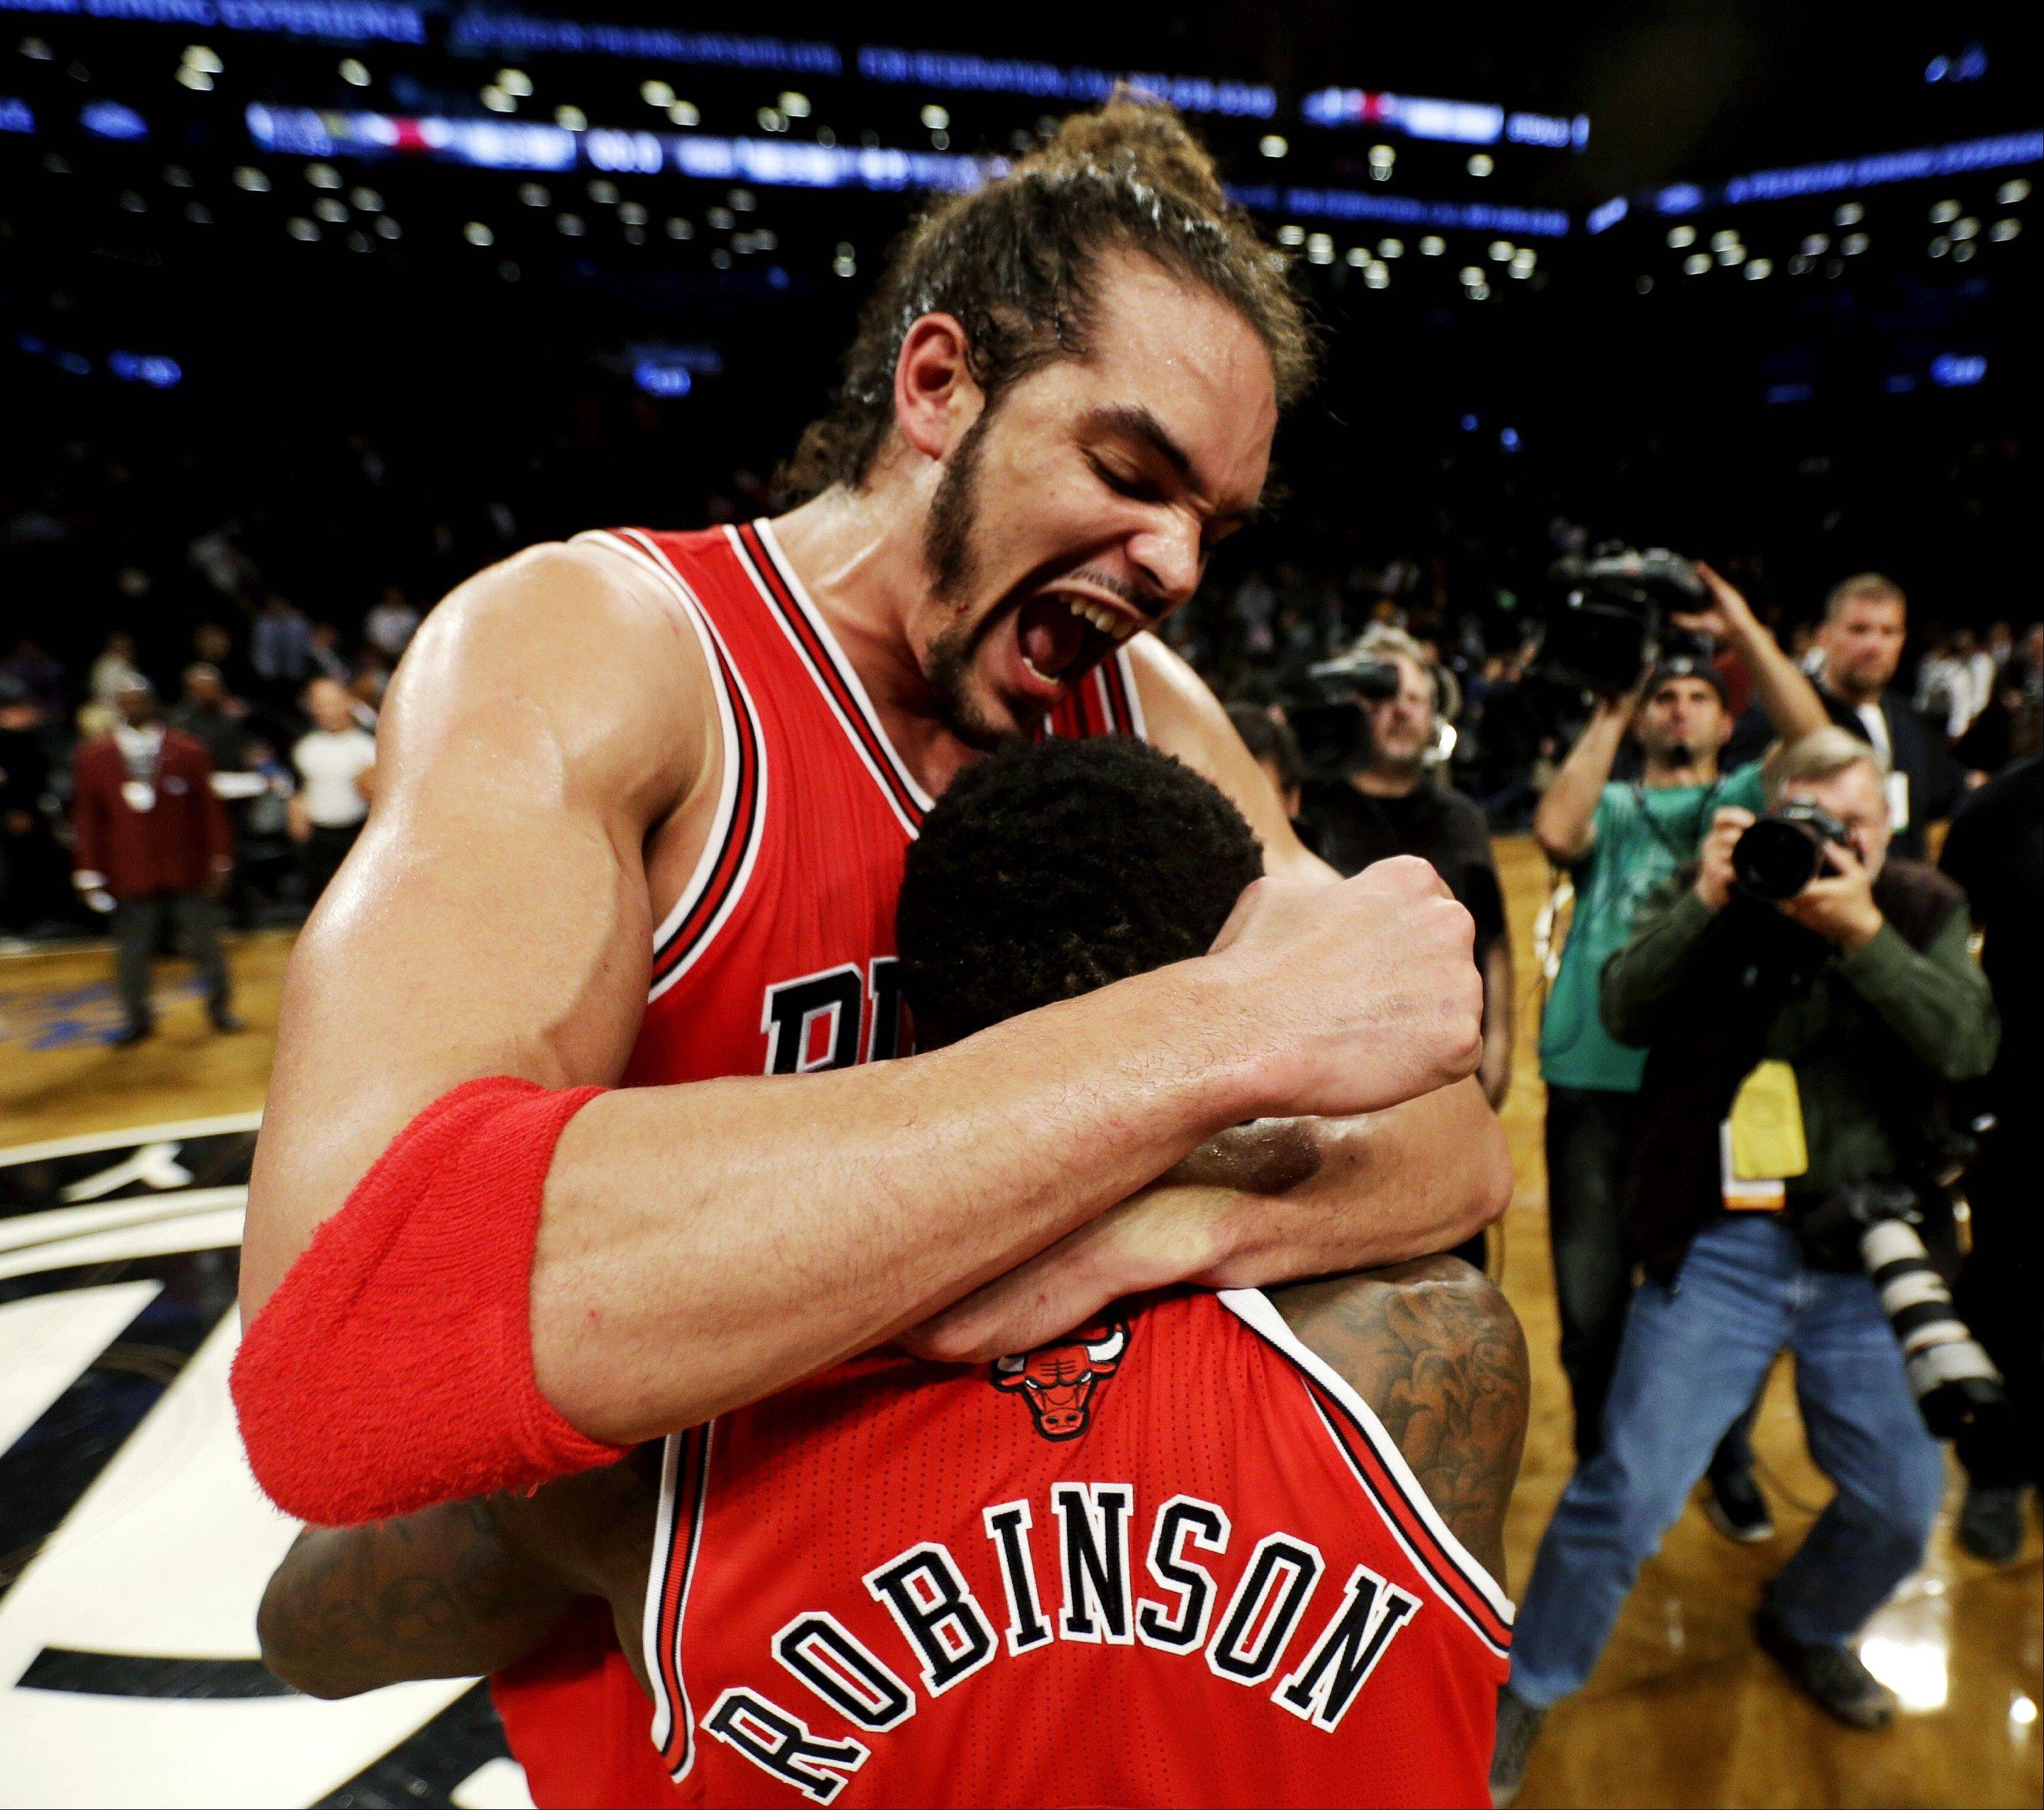 Joakim Noah, top, celebrates with teammate Nate Robinson after defeating the Brooklyn Nets 99-93 in Game 7 of their first-round playoff series in New York, Saturday, May 4, 2013. The Bulls won the series to advance to a second-round series against the Miami Heat beginning Monday.